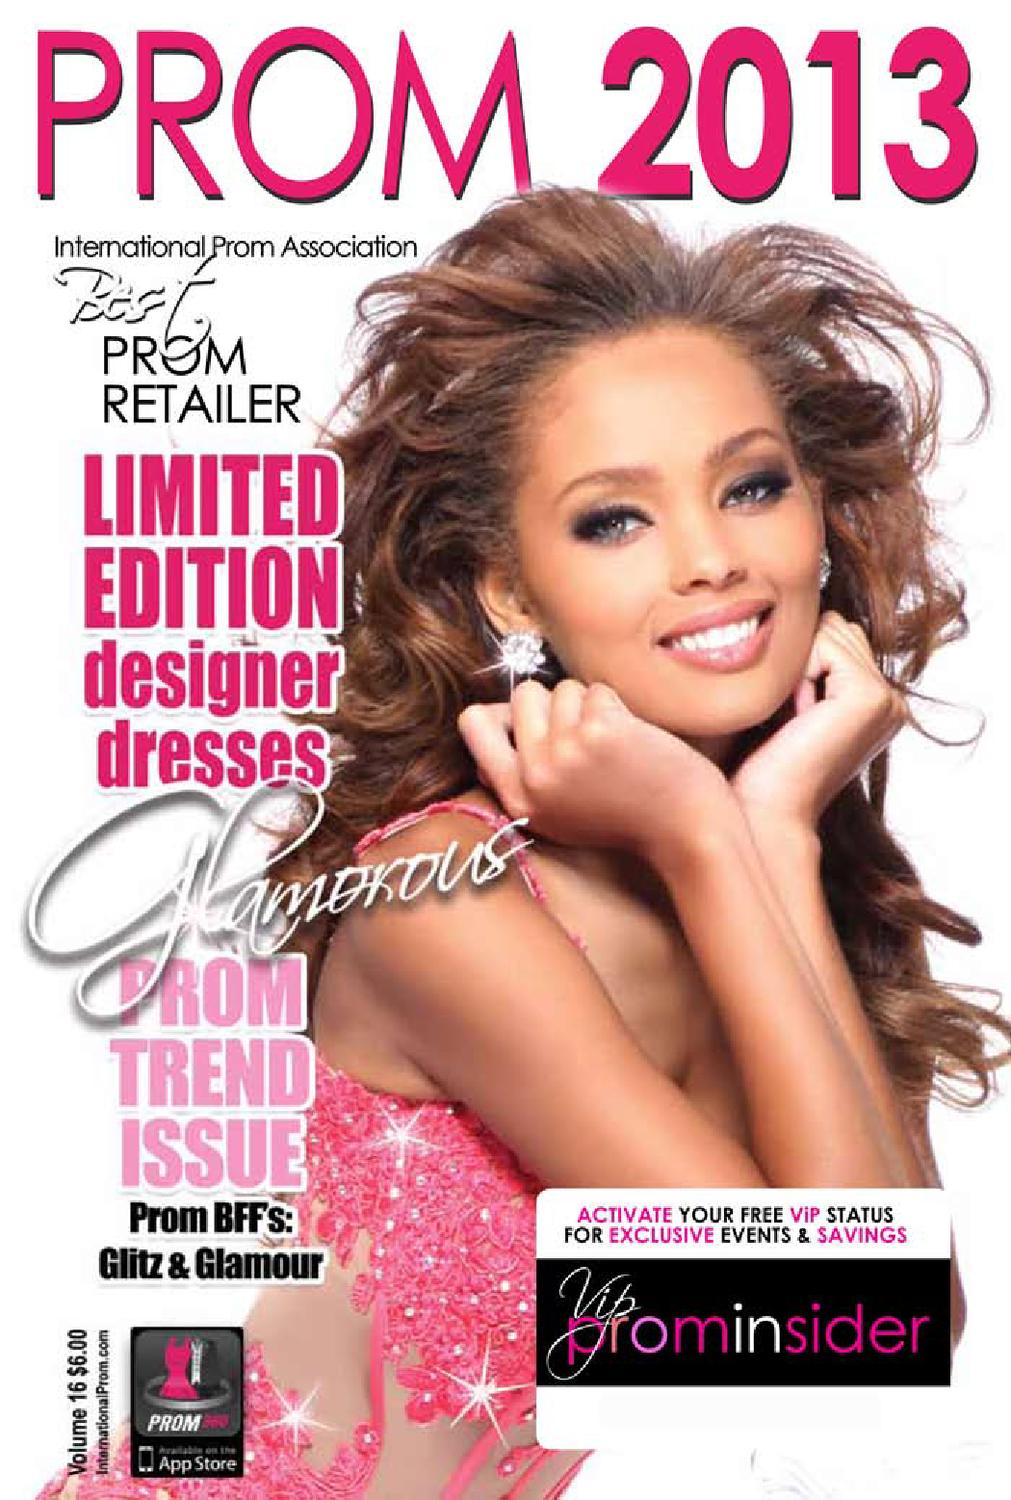 Free magazines of prom dresses